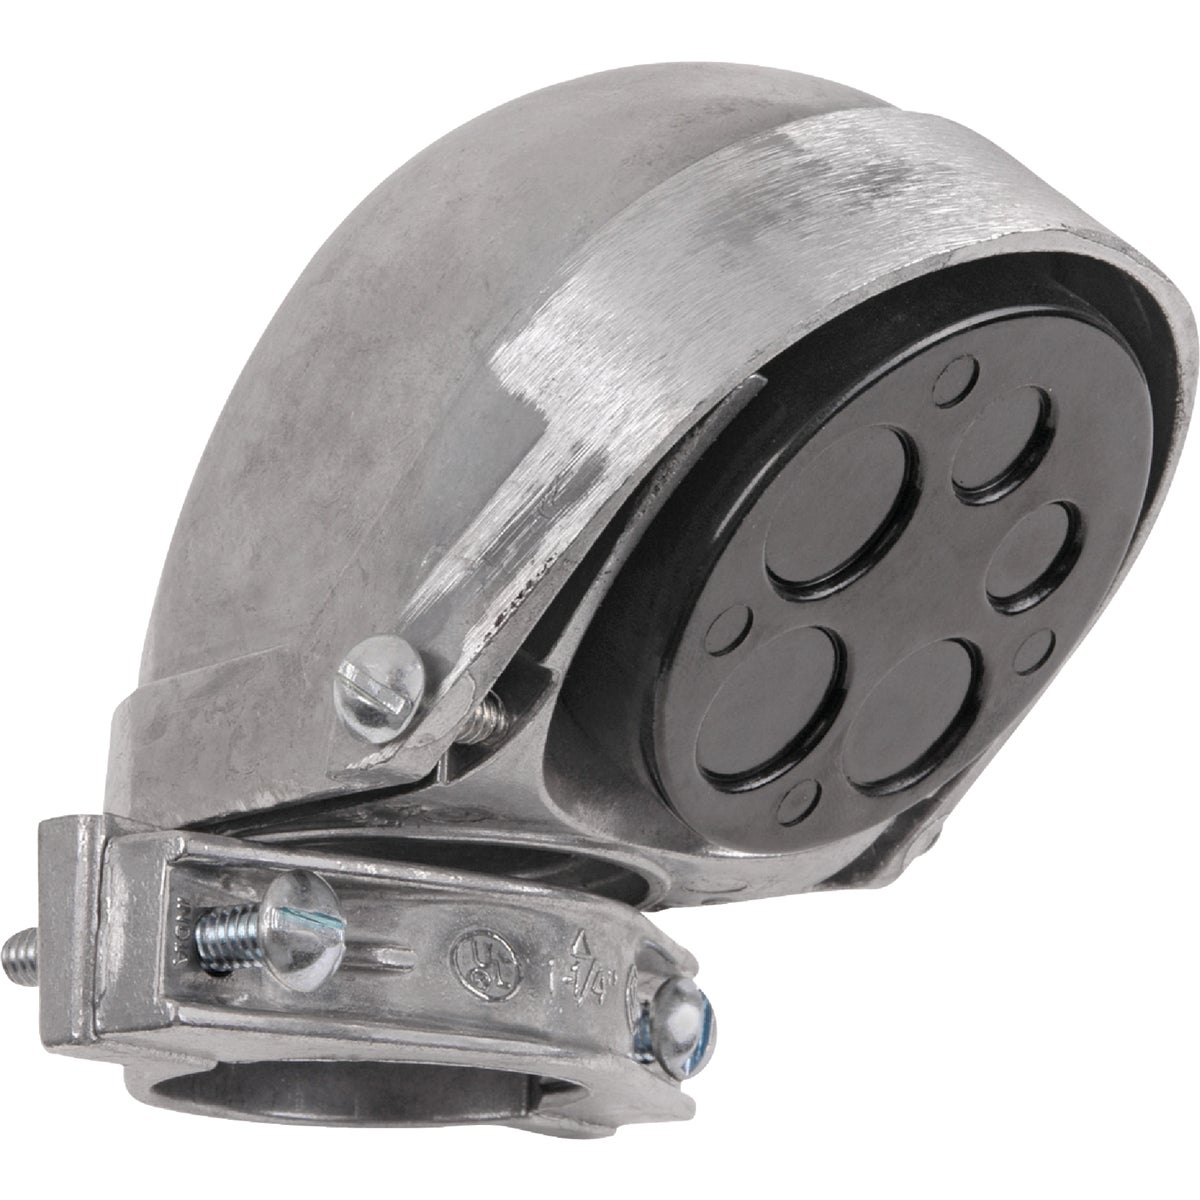 "1-1/4"" ENTRANCE CAP - SH1041 by Thomas & Betts"